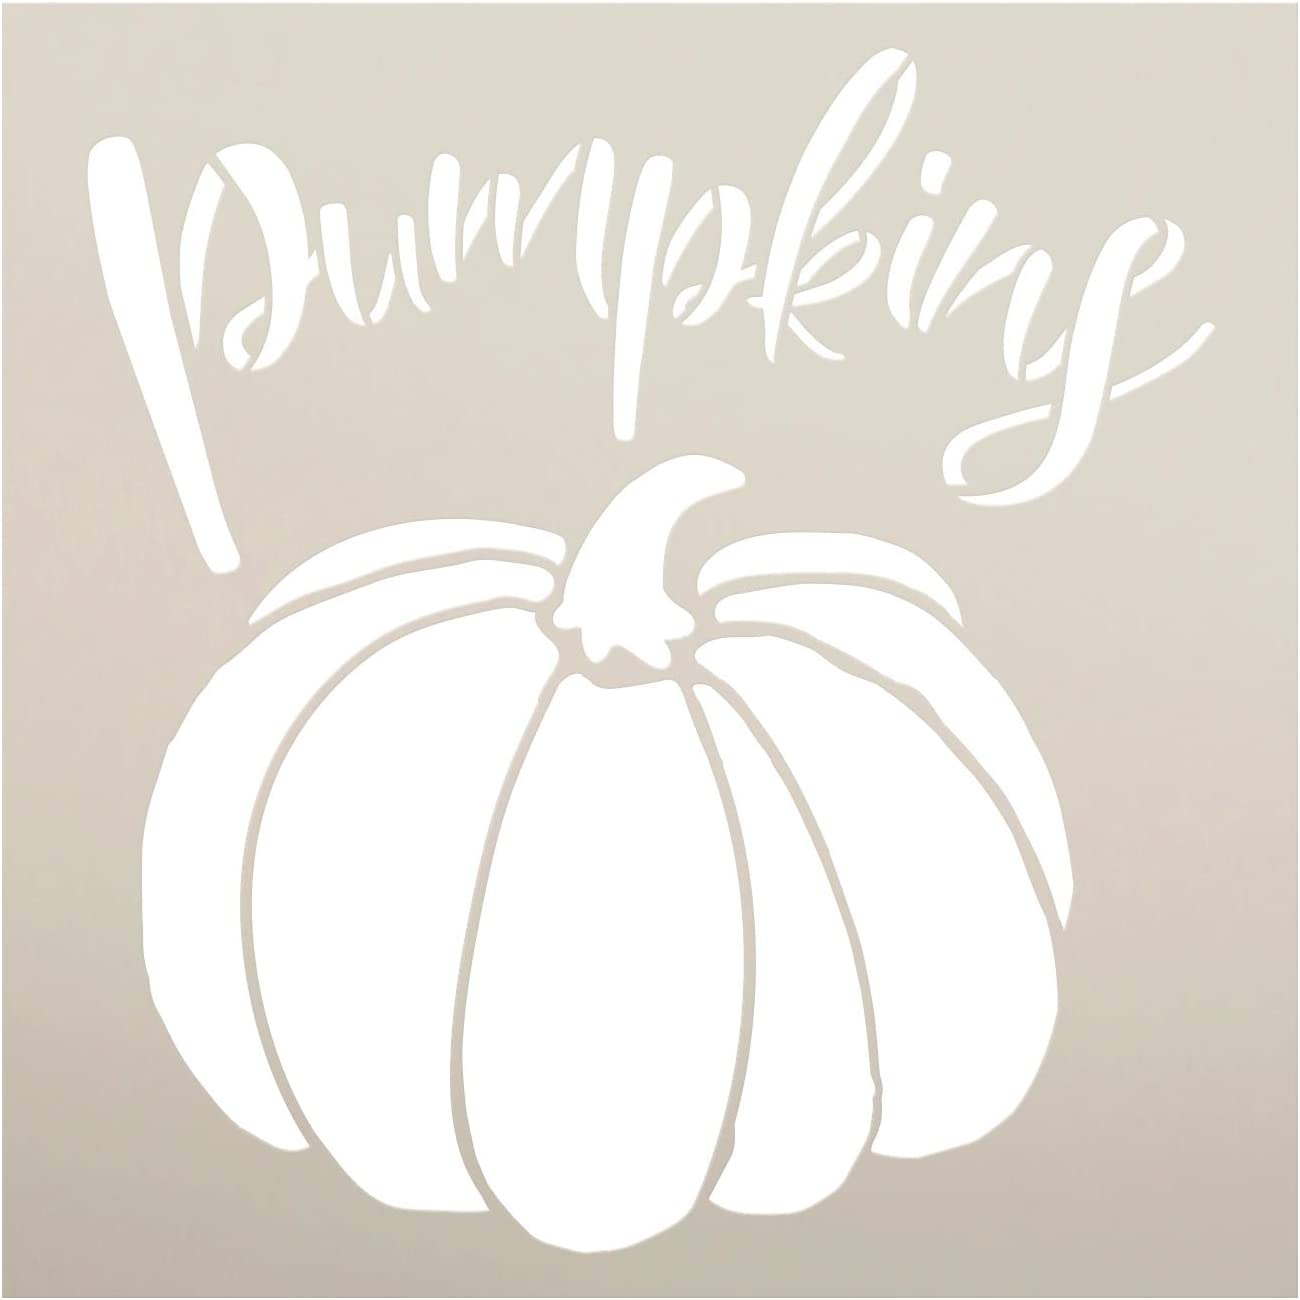 Pumpkins Garden Marker Stencil by StudioR12 | DIY Spring Backyard Outdoor Home Decor | Vegetable Plant Label | Craft & Paint Rustic Wood Signs | Reusable Mylar Template | Select Size (9 x 9 inch)